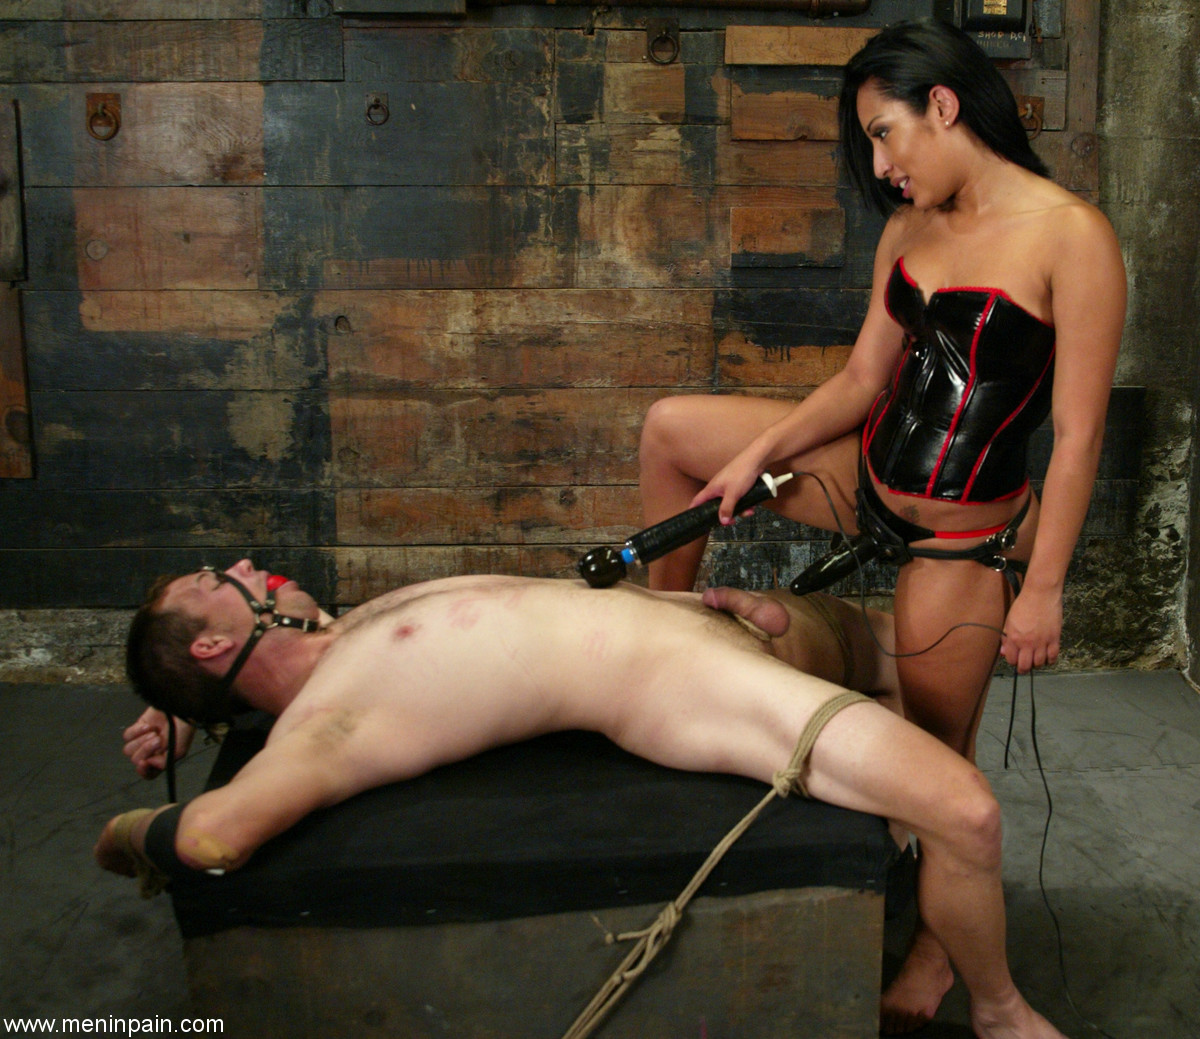 pegging-bdsm